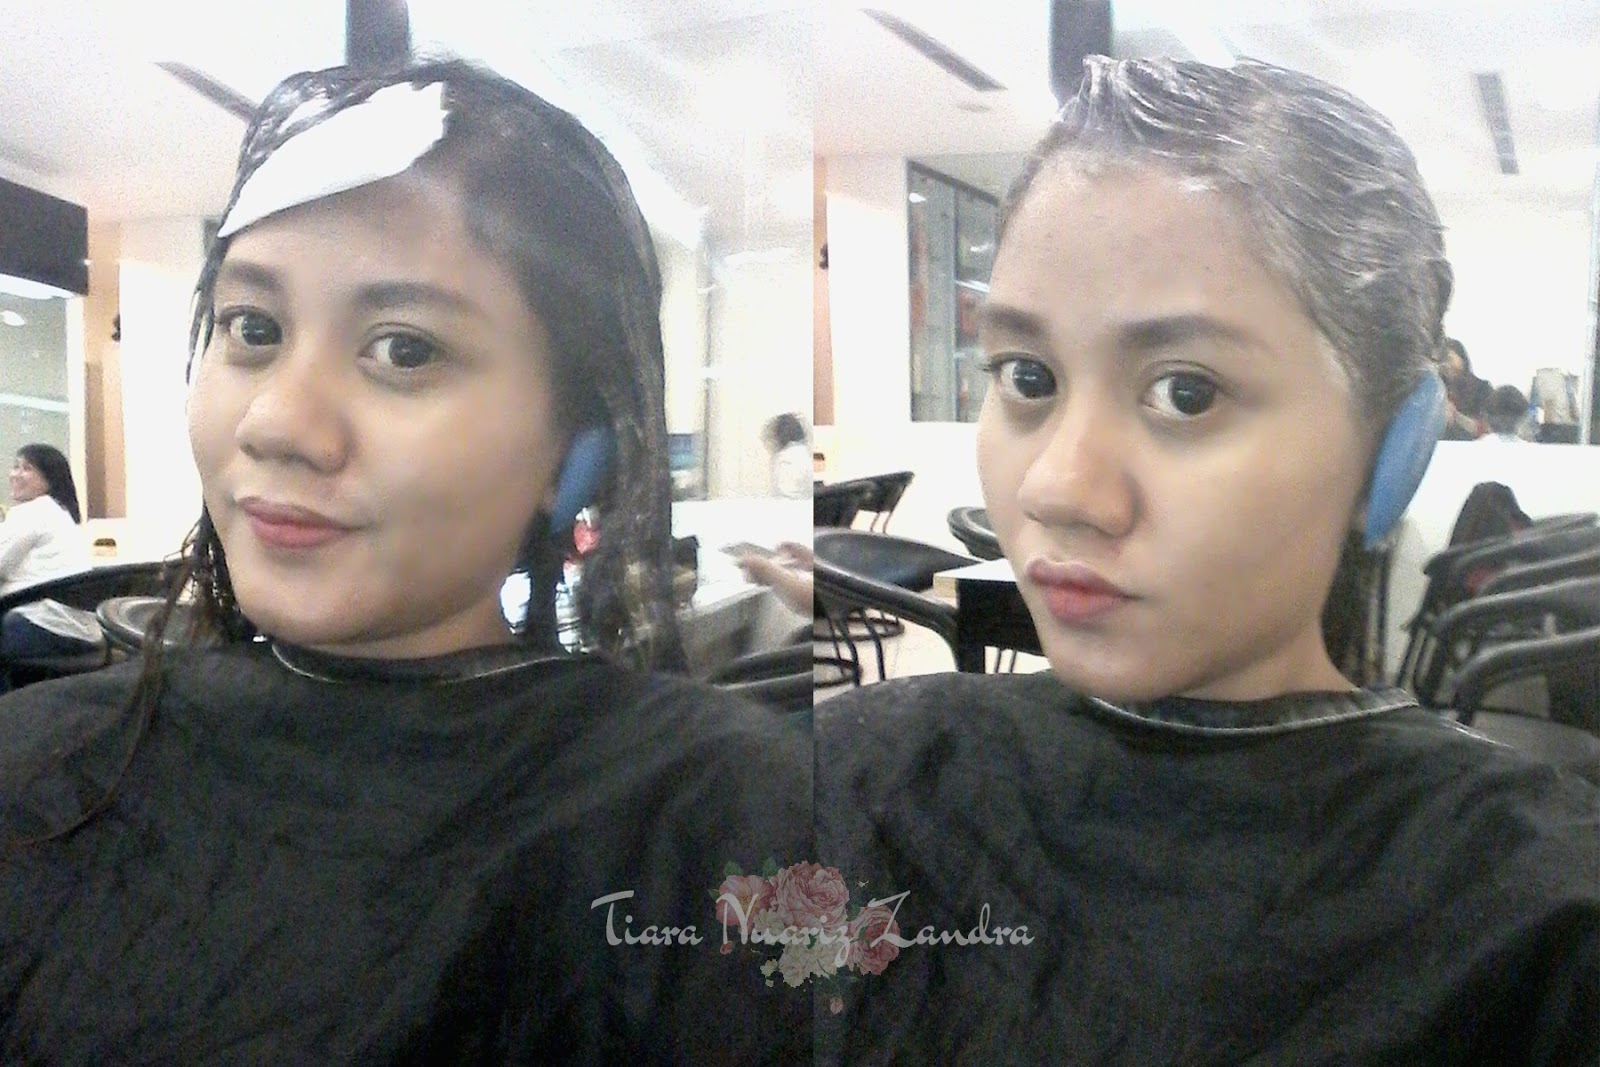 HAIR COLORING AT JOHNNY ANDREAN SCHOOL   TRAINING - BEHIND THE SCENE ... 215a6364b3